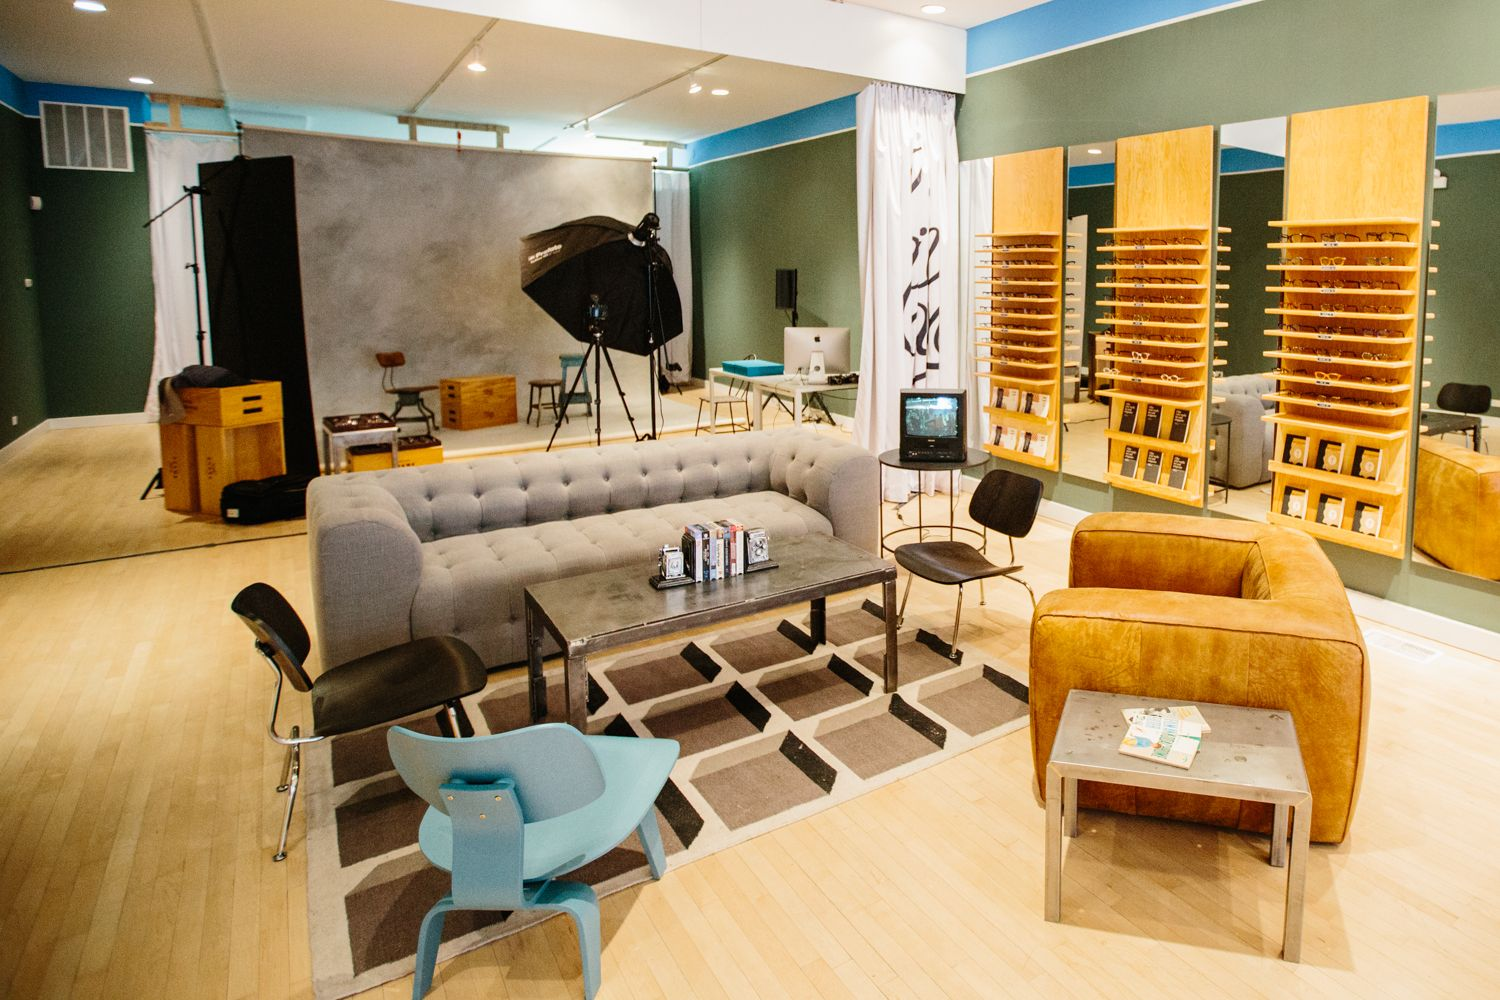 Introducing the Warby Parker Frame Studio | Warby parker, Chicago ...